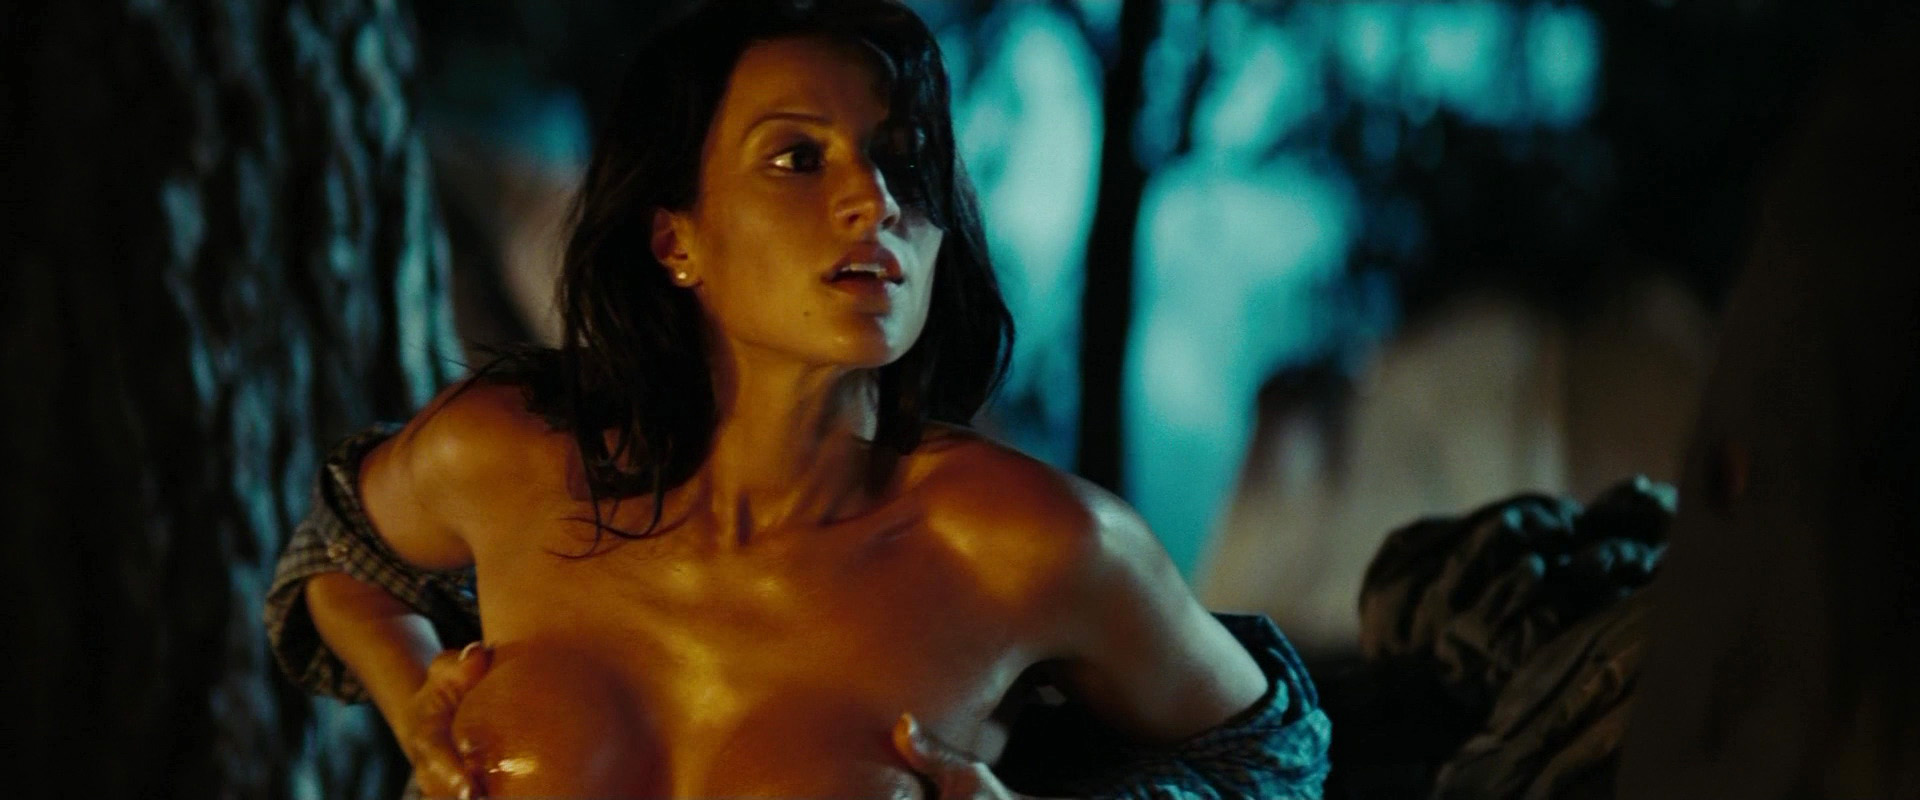 America olivo friday the 13th tits gif